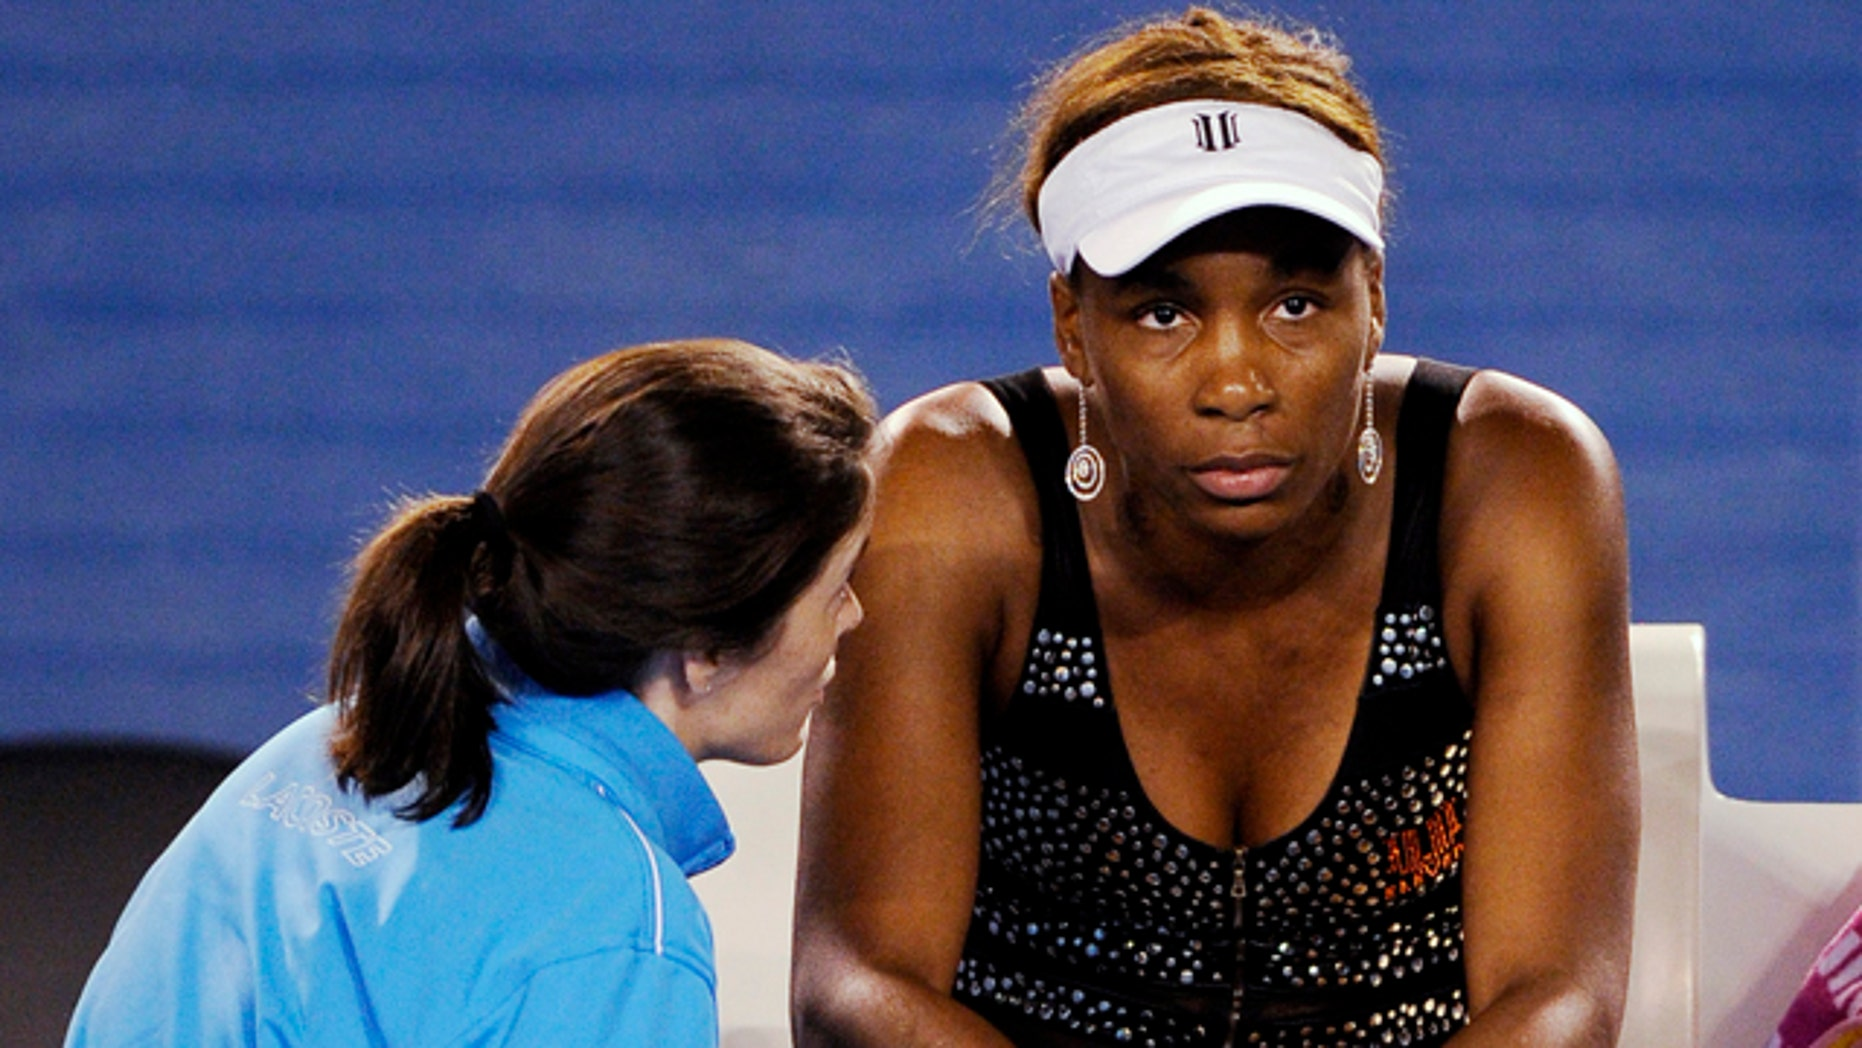 Jan. 21: Venus Williams is spoken to by a trainer before she withdrew from her third round match against Germany's Andrea Petkovic with an injury at the Australian Open tennis championships in Melbourne, Australia.